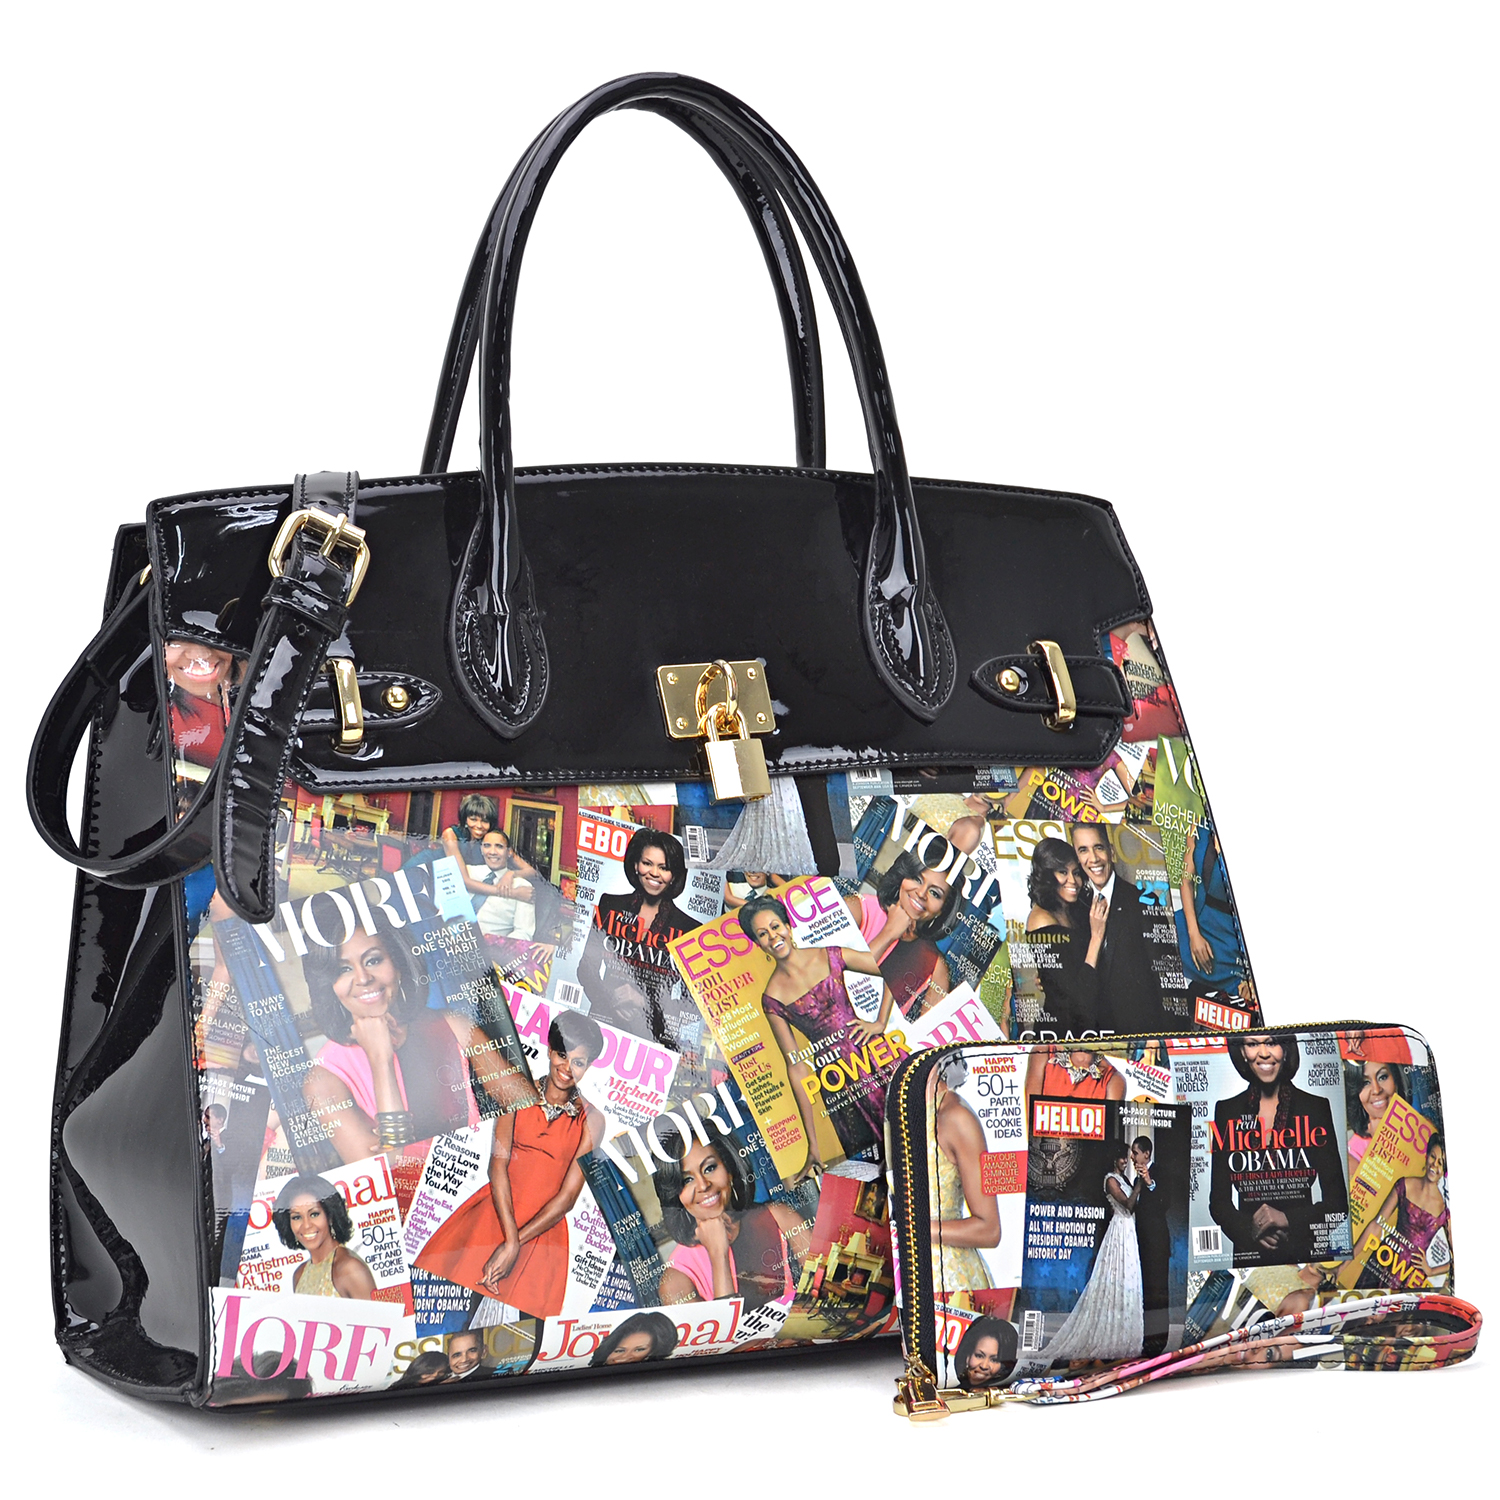 Michelle Obama Magazine Cover Printed Patent Leather Satchel with padlock deco and with Matching wallet